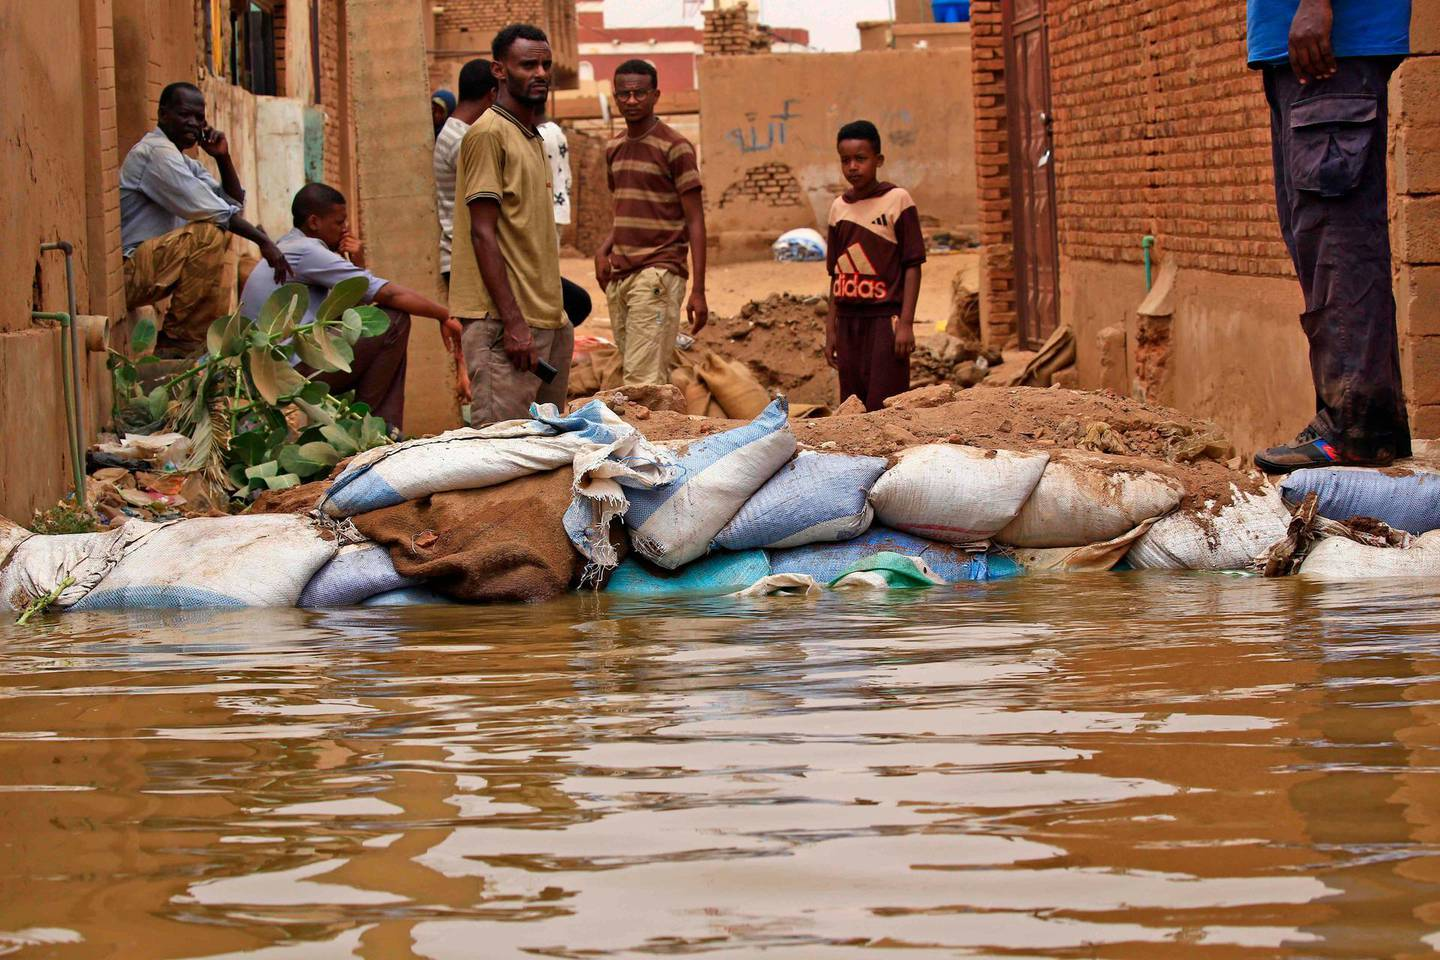 TOPSHOT - Sudanese stand amidst flood waters in Tuti island, where the Blue and White Nile merge in the Sudanese capital Khartoum, on September 3, 2020.  / AFP / ASHRAF SHAZLY